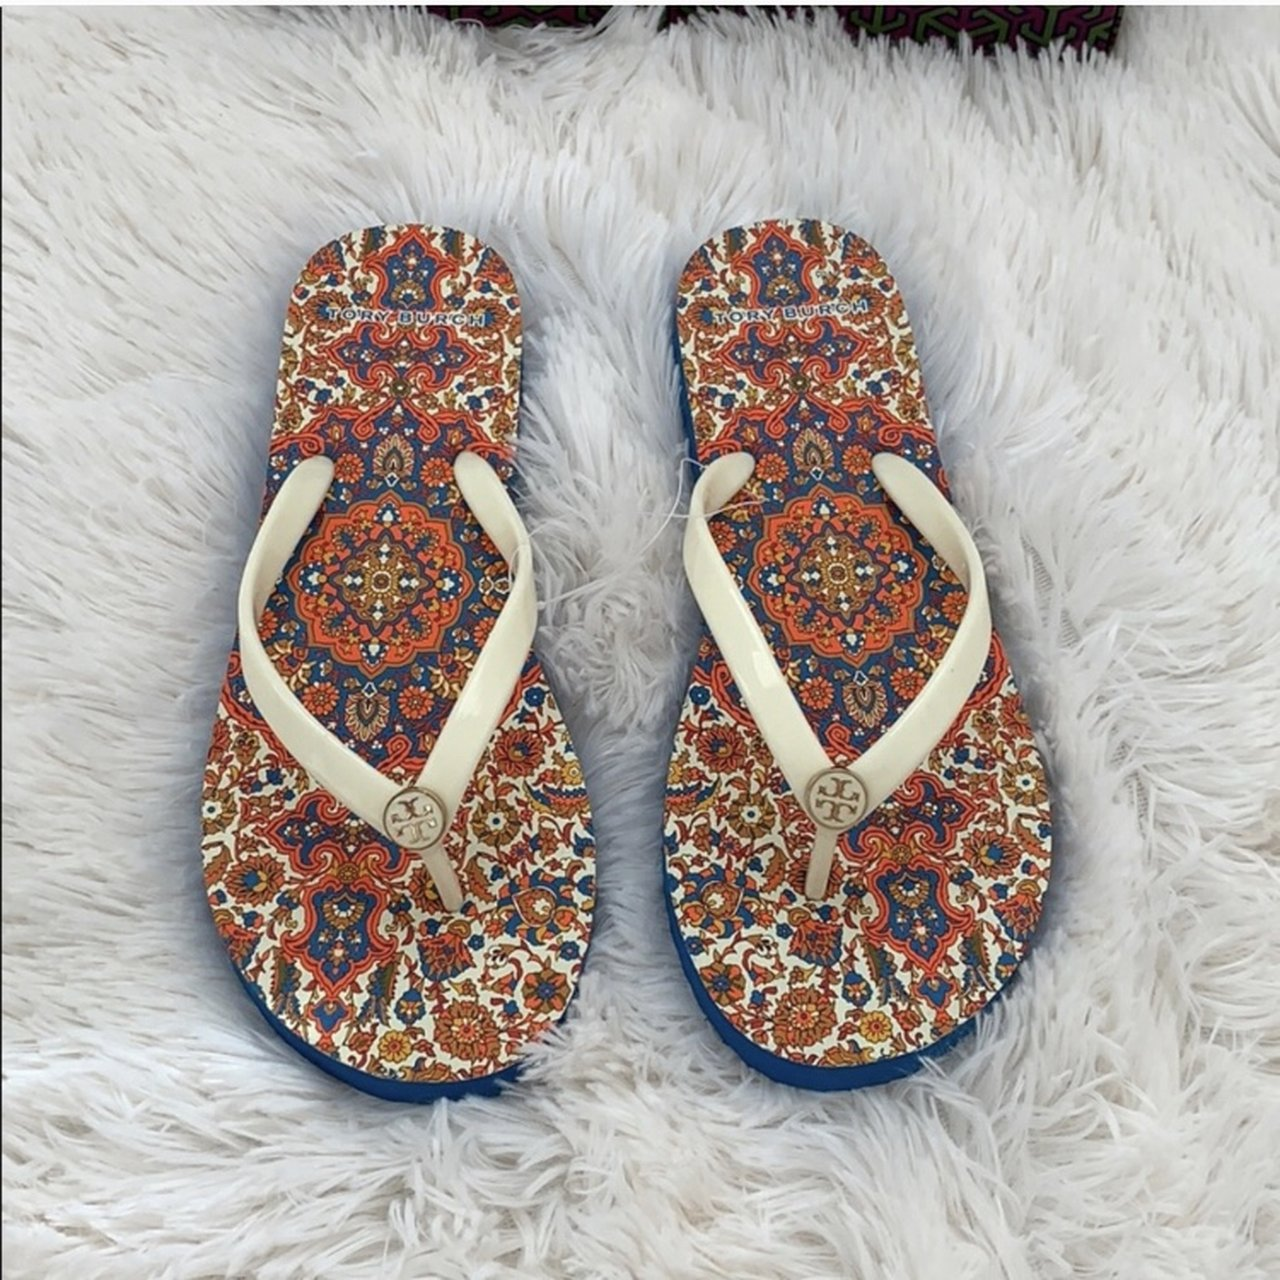 36780f2c6 Brand new with box Authentic Tory Burch flip flops size 11   - Depop